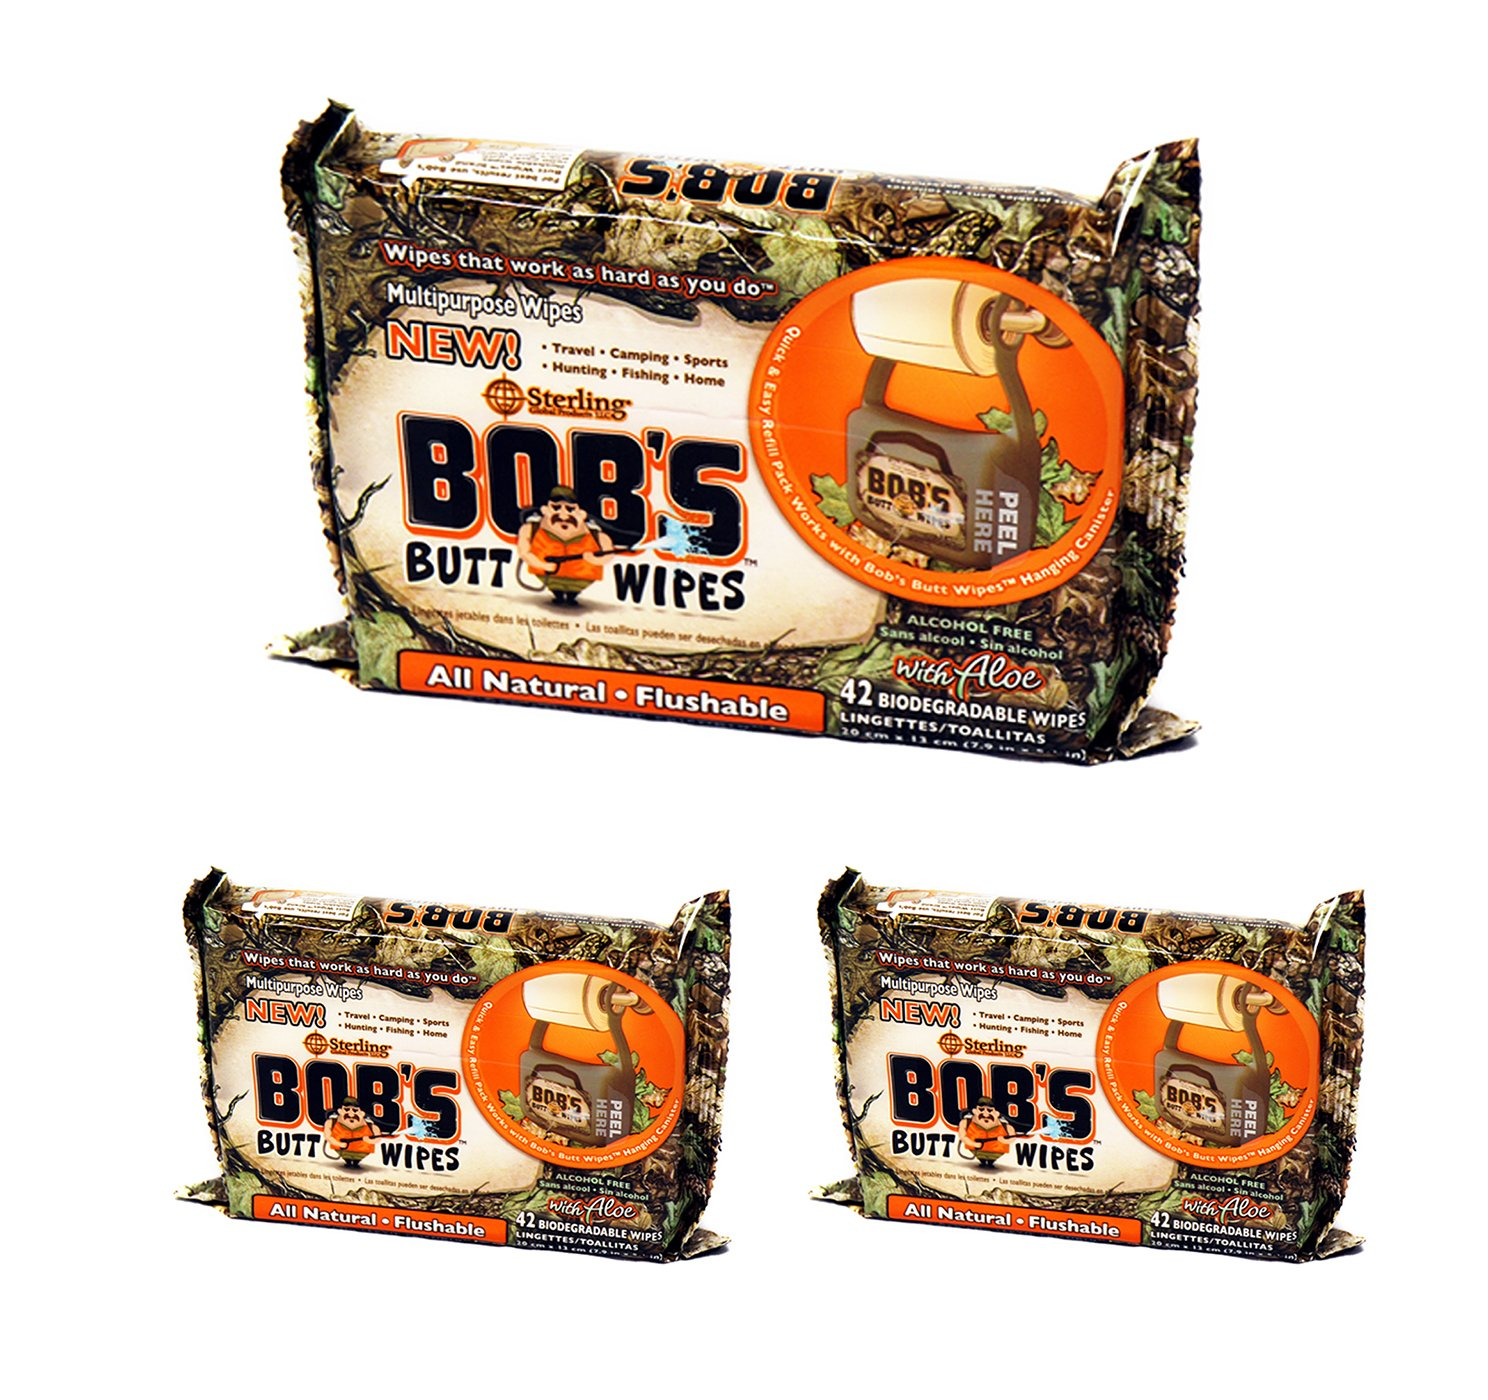 Amazon.com: Bobs Butt Wipes 42ct Refill Only, 3 Pack: Health & Personal Care